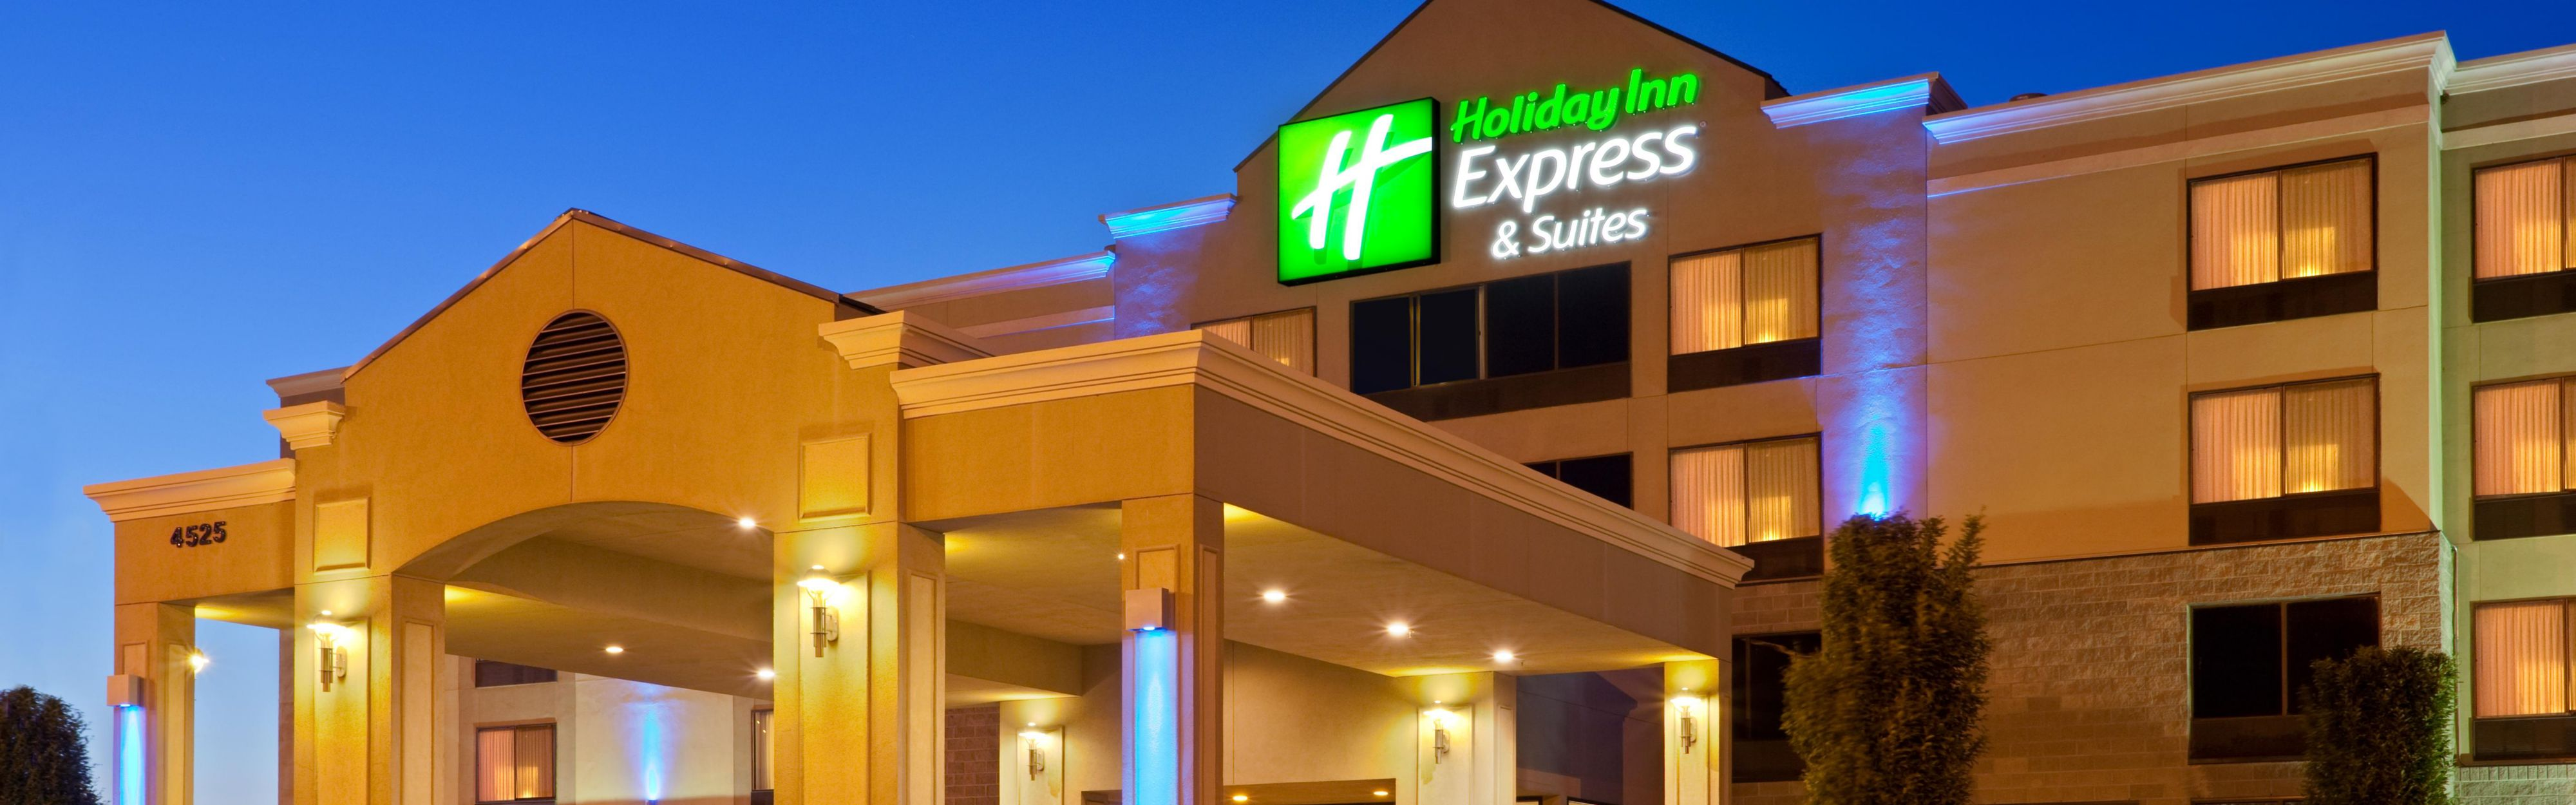 holiday inn express suites pasco tricities pasco washington wa. Black Bedroom Furniture Sets. Home Design Ideas